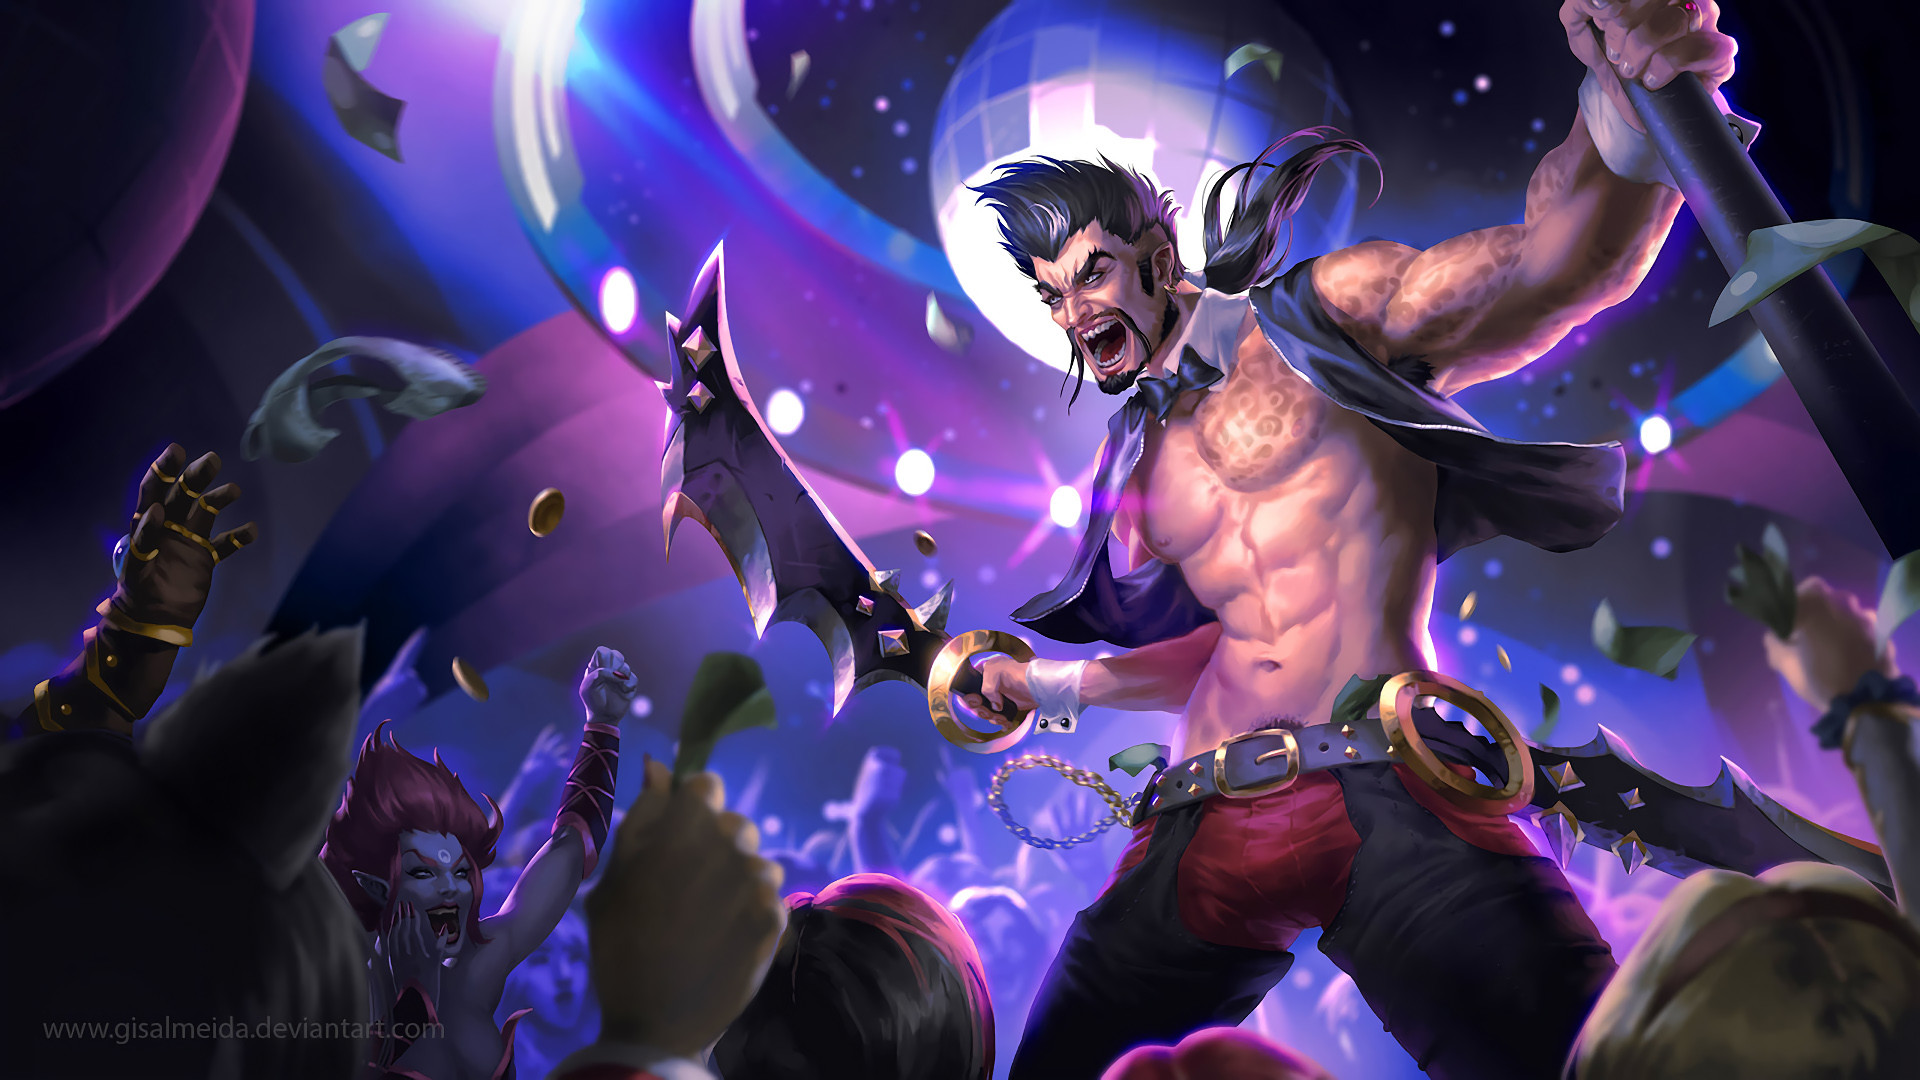 1920x1080 Sexy Go Go Draven by GisAlmeida HD Wallpaper Fan Art Artwork League of  Legends lol